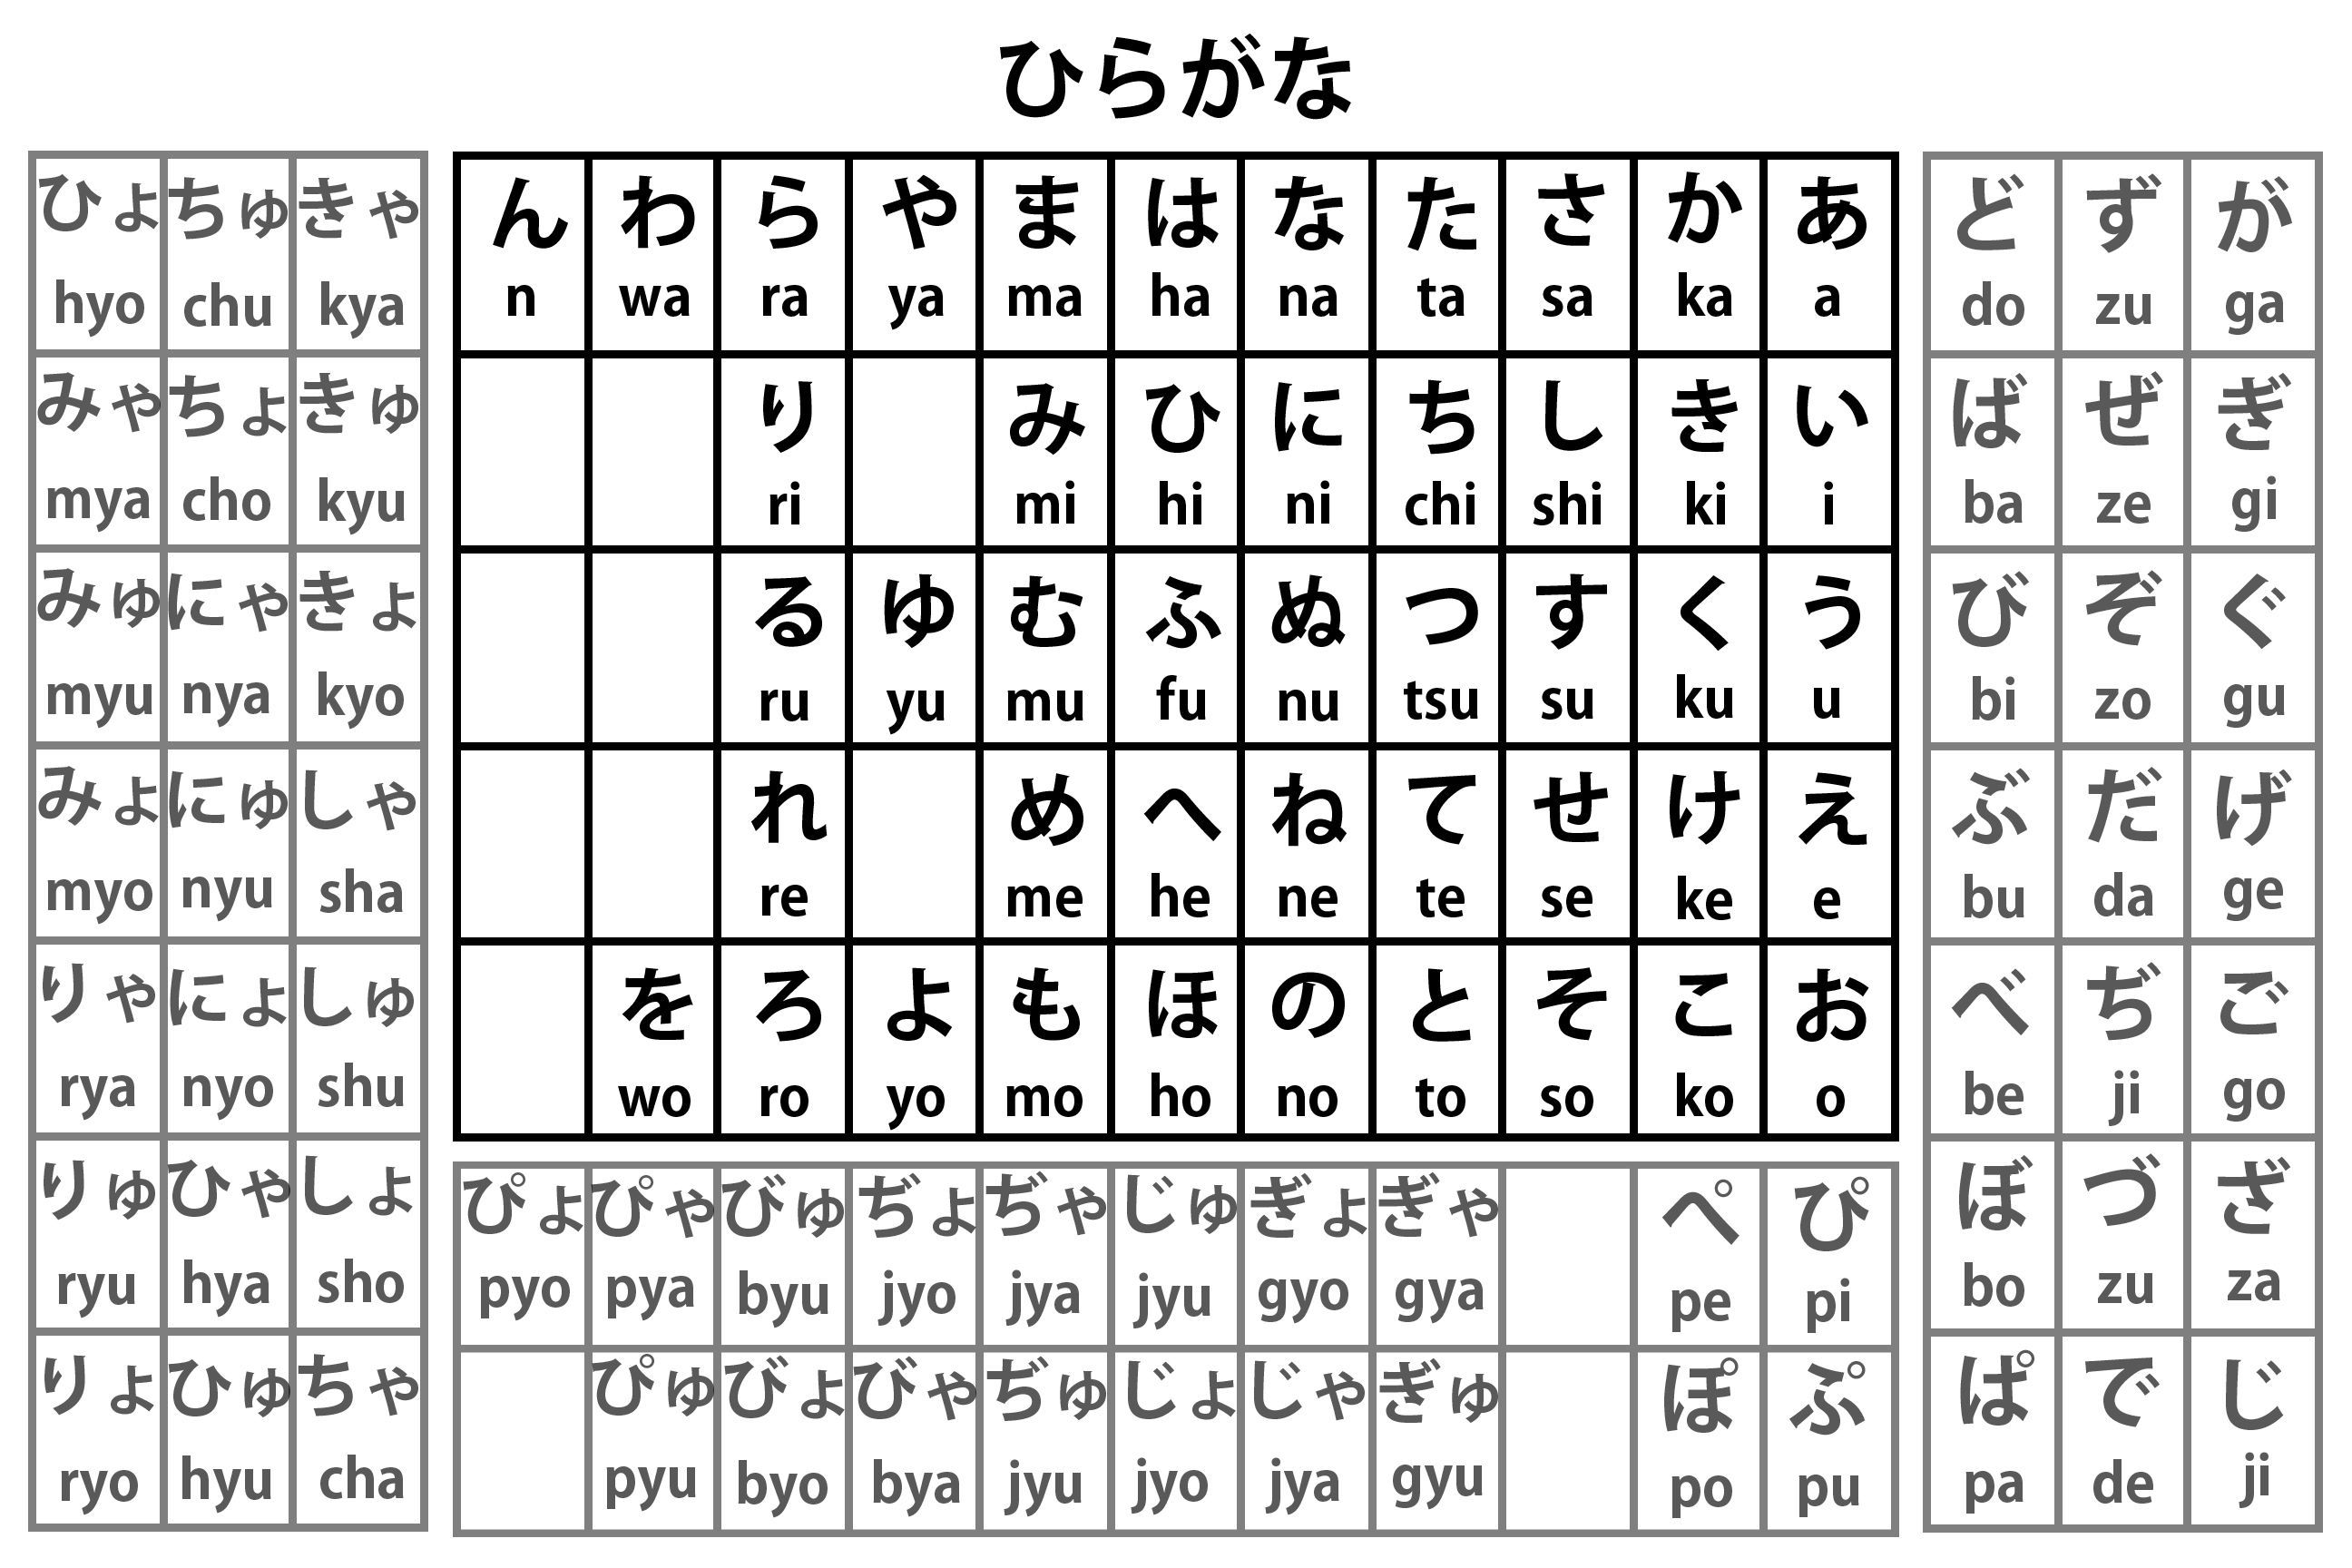 Full hiragana chart also mersnoforum rh